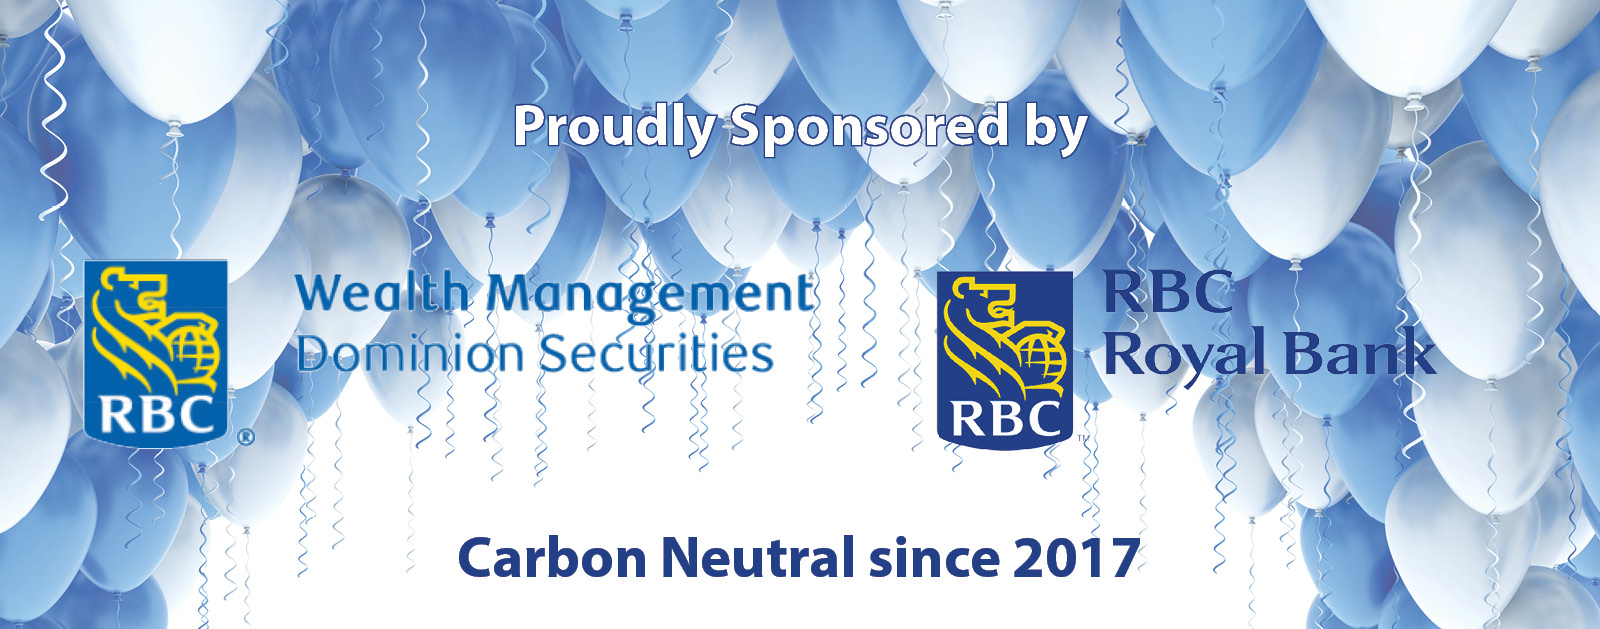 Proudly sponsored by RBC Wealth Management, and RBC Royal Bank